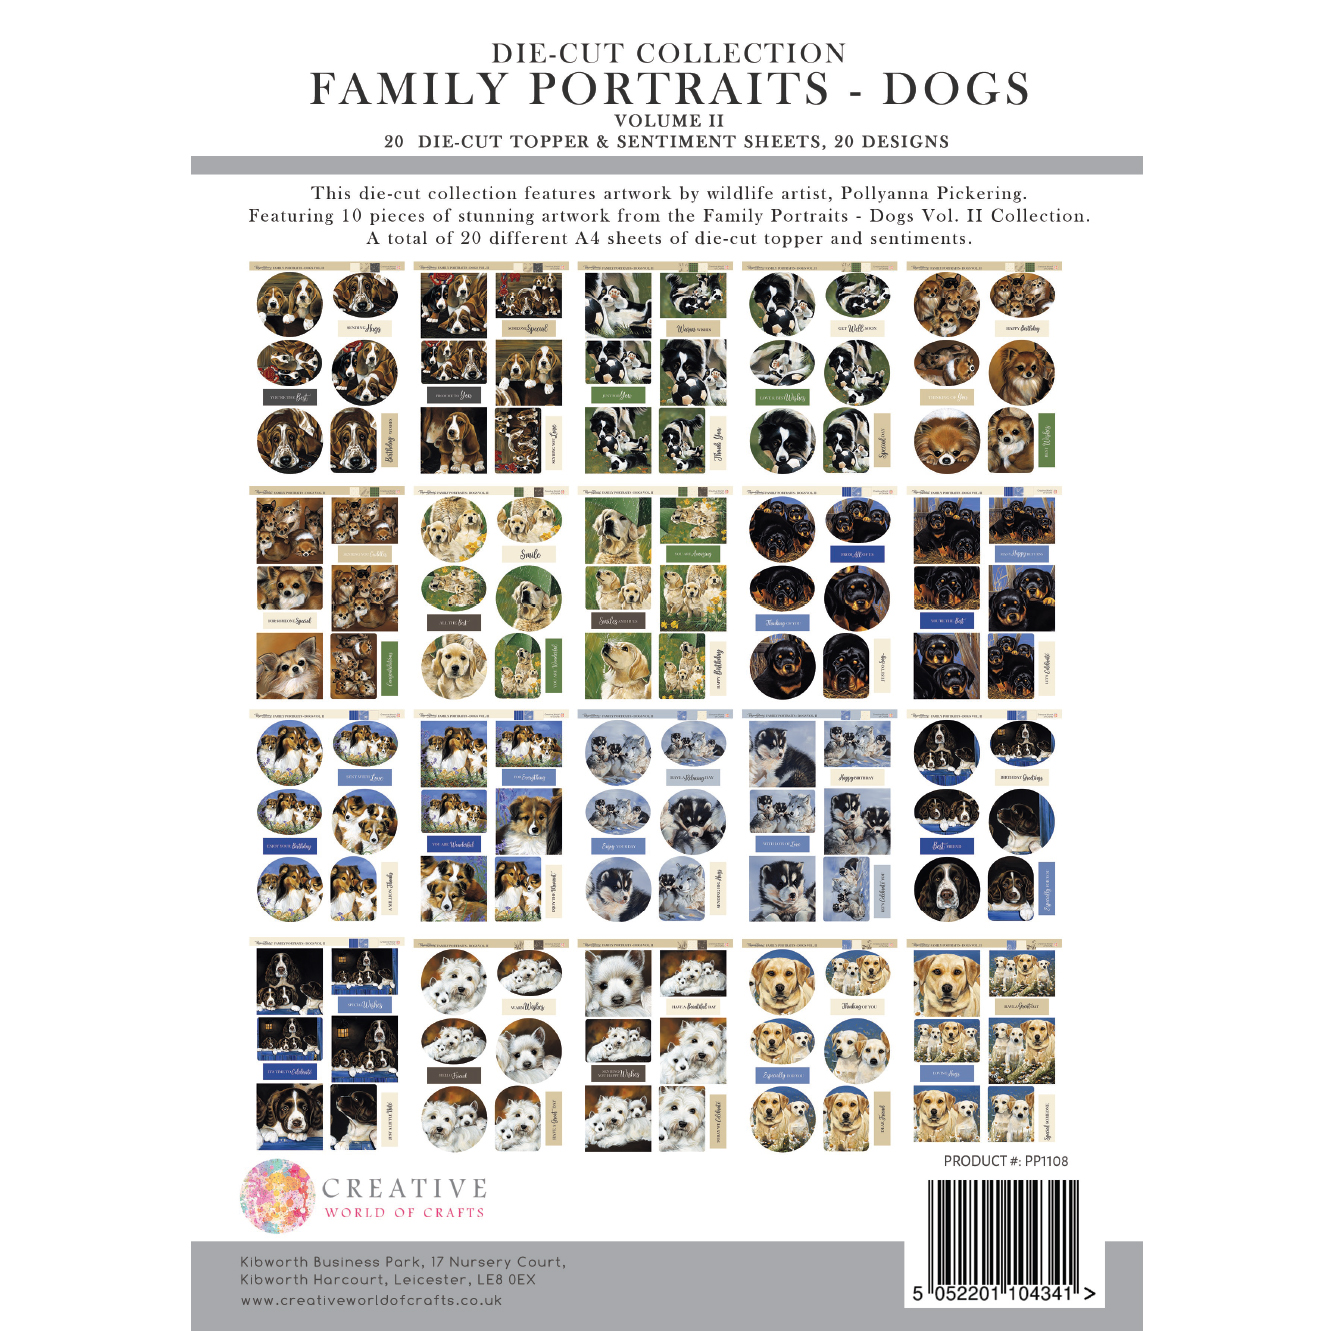 Pollyanna Pickering Family Portraits – Dogs Vol. II Die Cut Toppers and Sentiments Collection